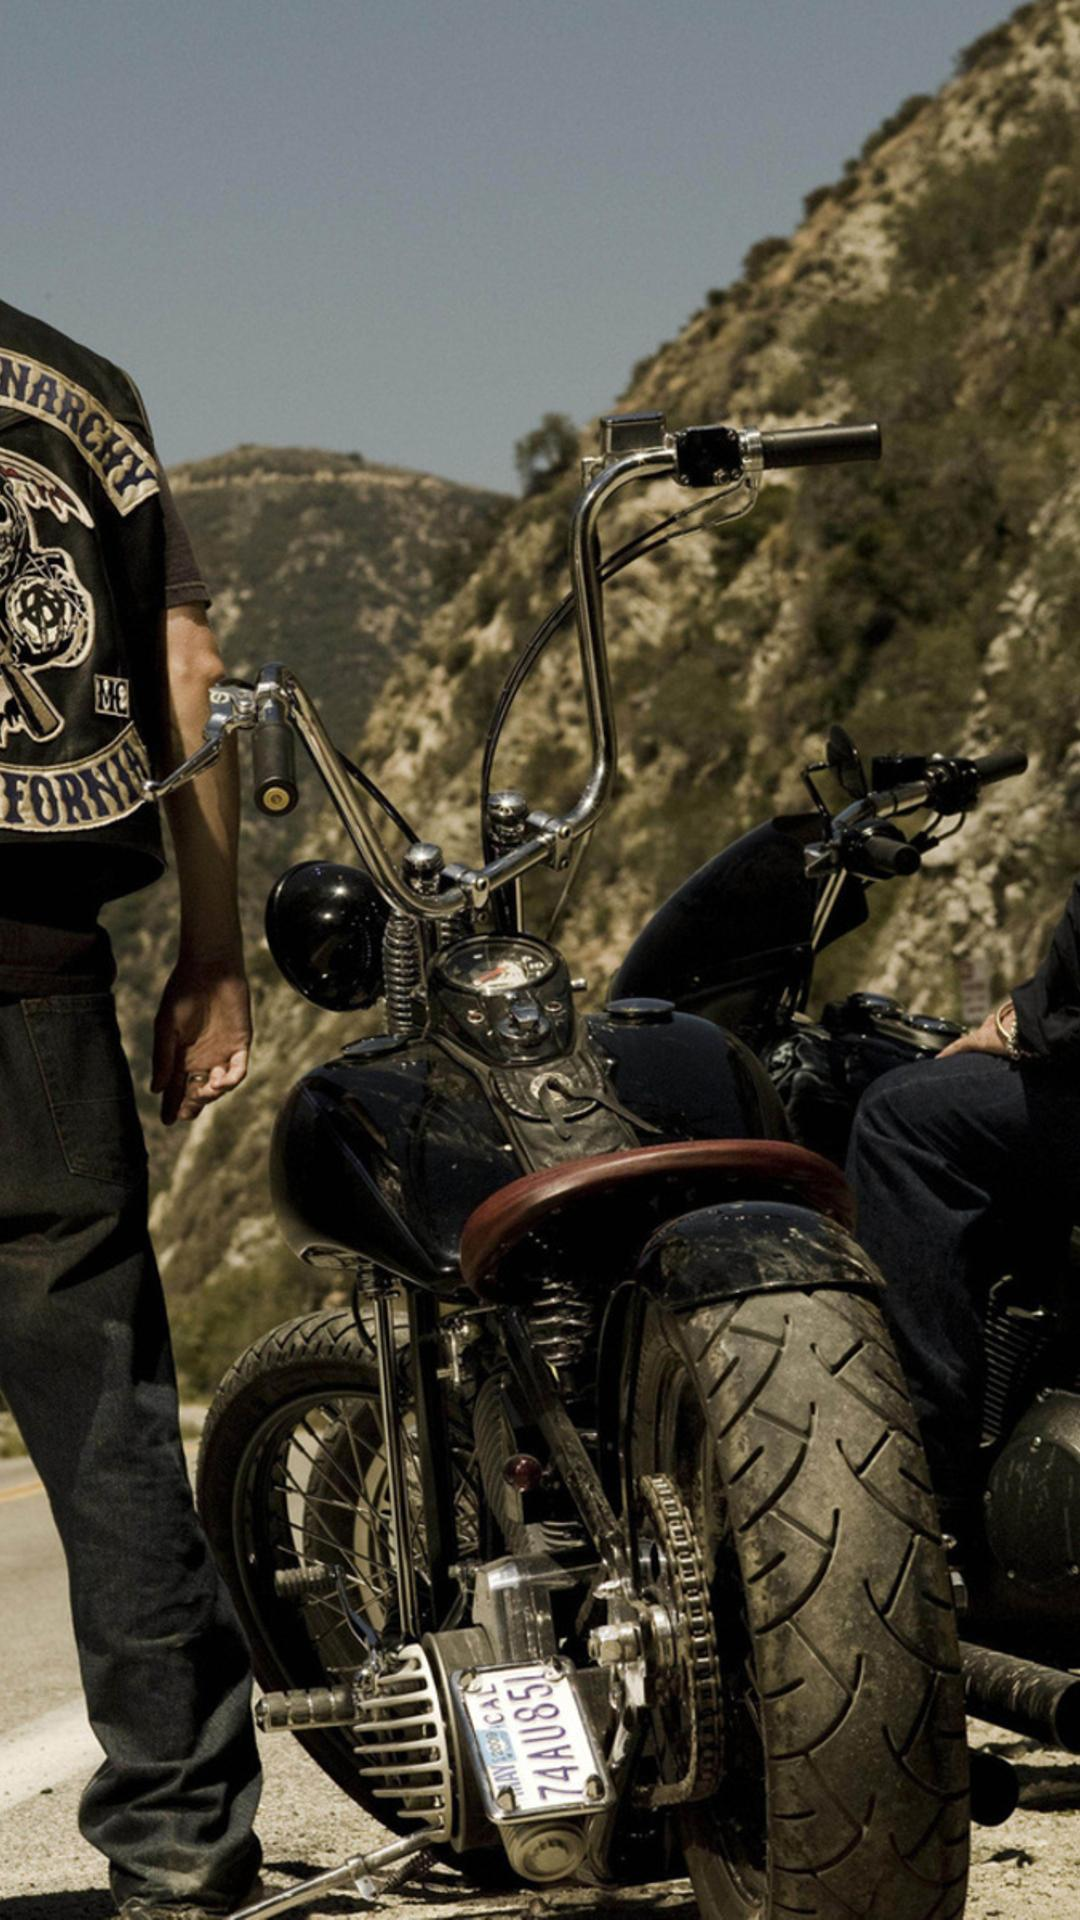 Sons Of Anarchy Scene Movie Wallpaper Download 1080x1920